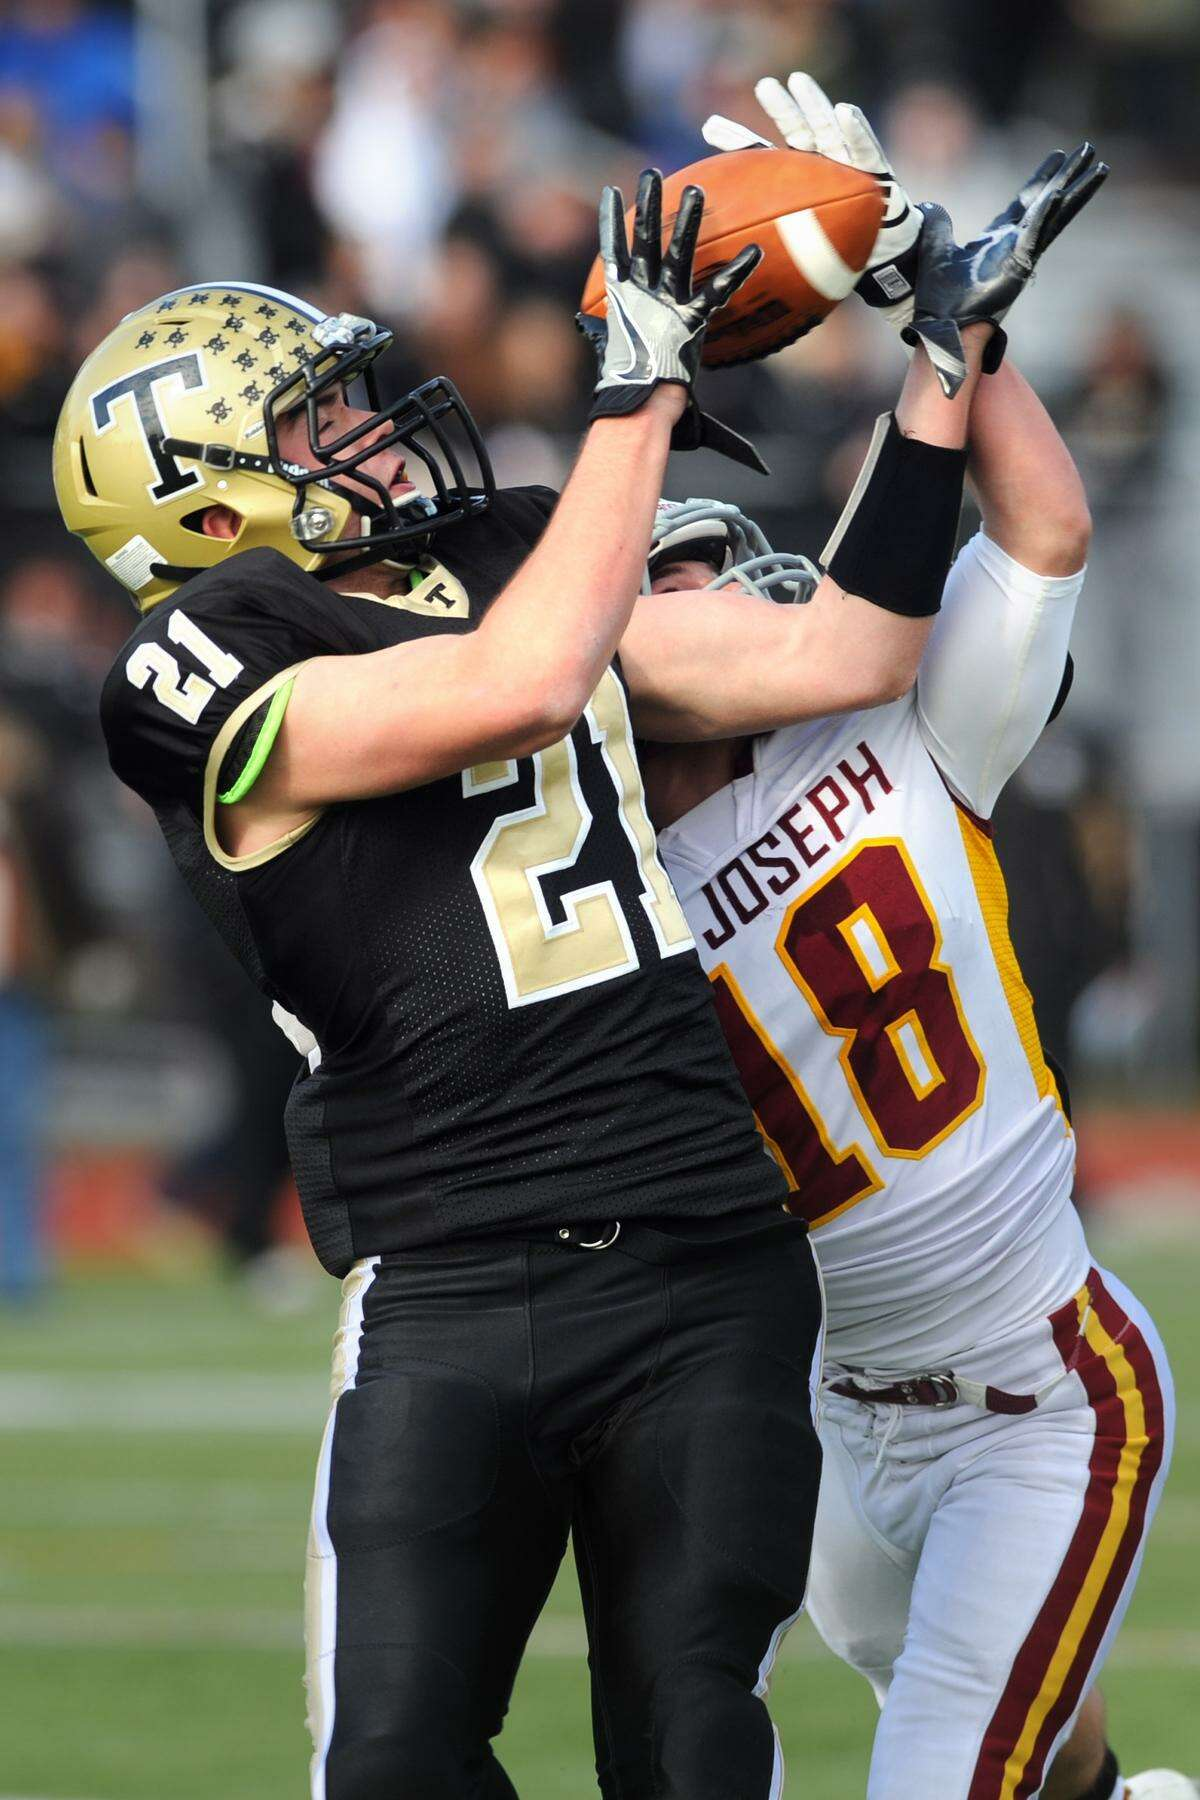 Trumbull?'s Peter Raverta makes a reception ahead of St. Joseph defender Connor Murphy during high school football action at Trumbull High School on Thanksgiving Day, Nov. 24, 2016.